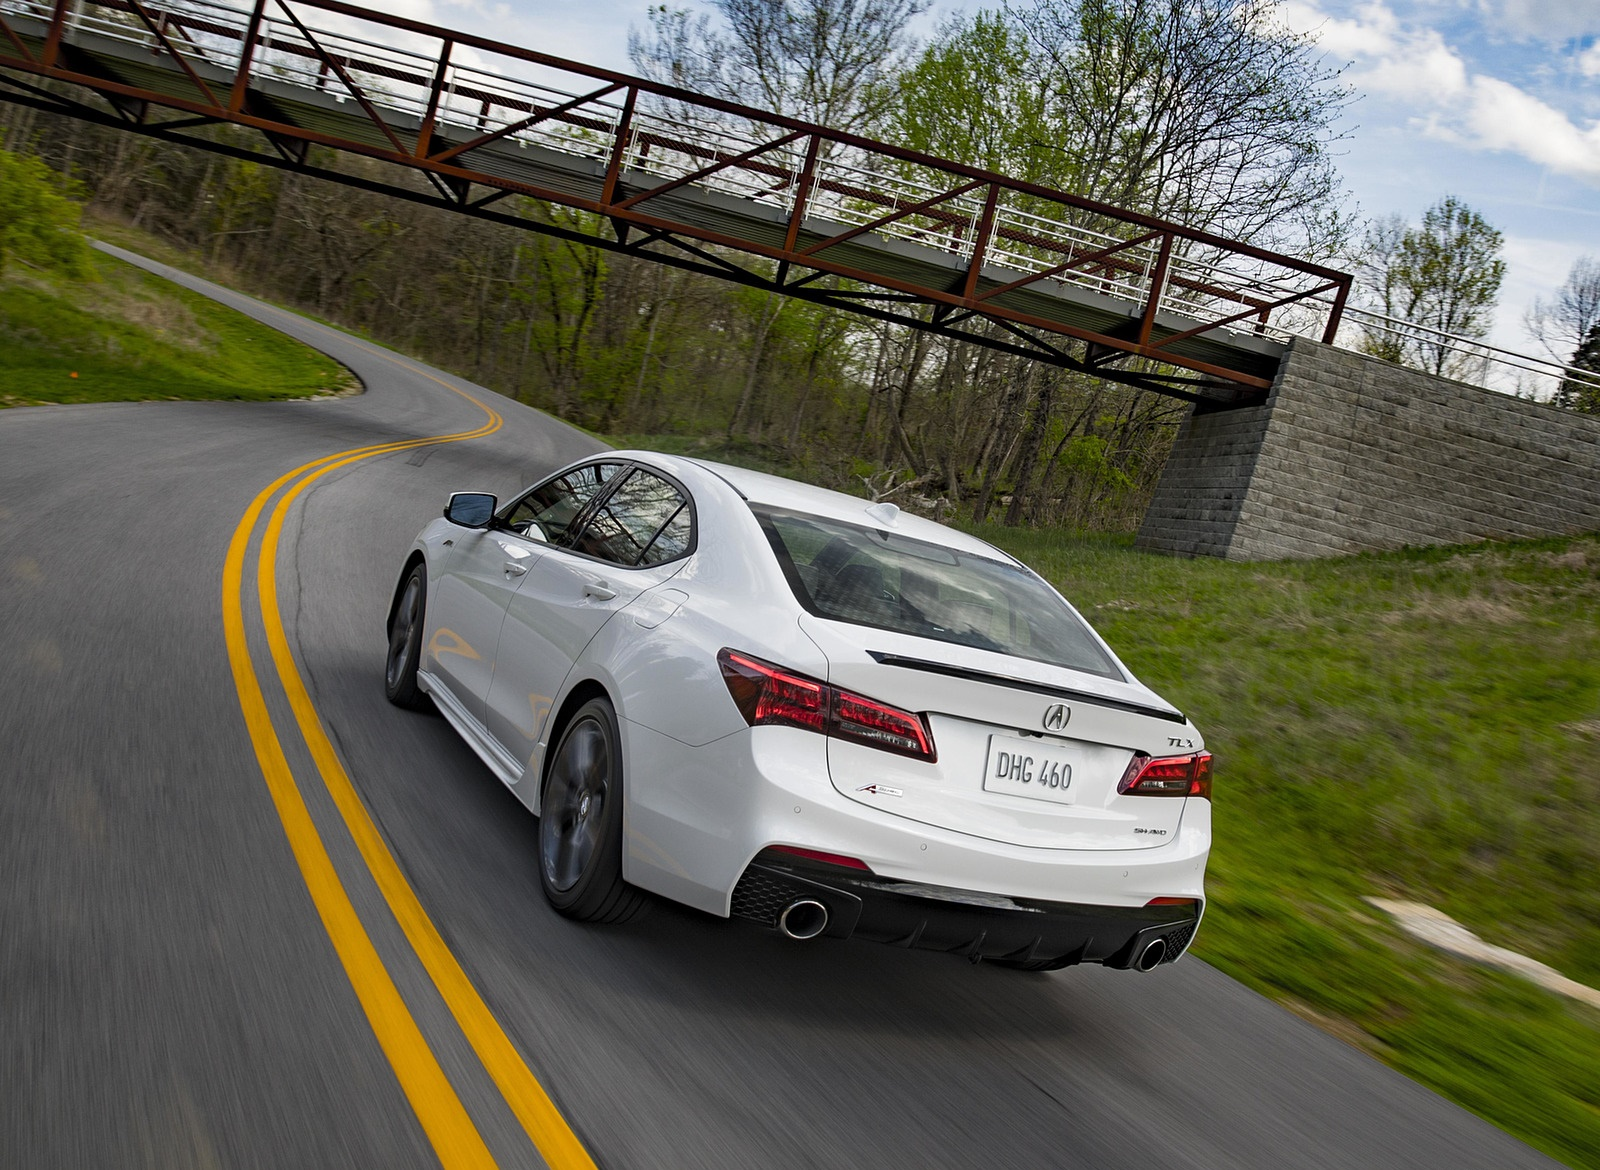 2019 Acura TLX A-Spec SH-AWD Rear Three-Quarter Wallpapers (12)